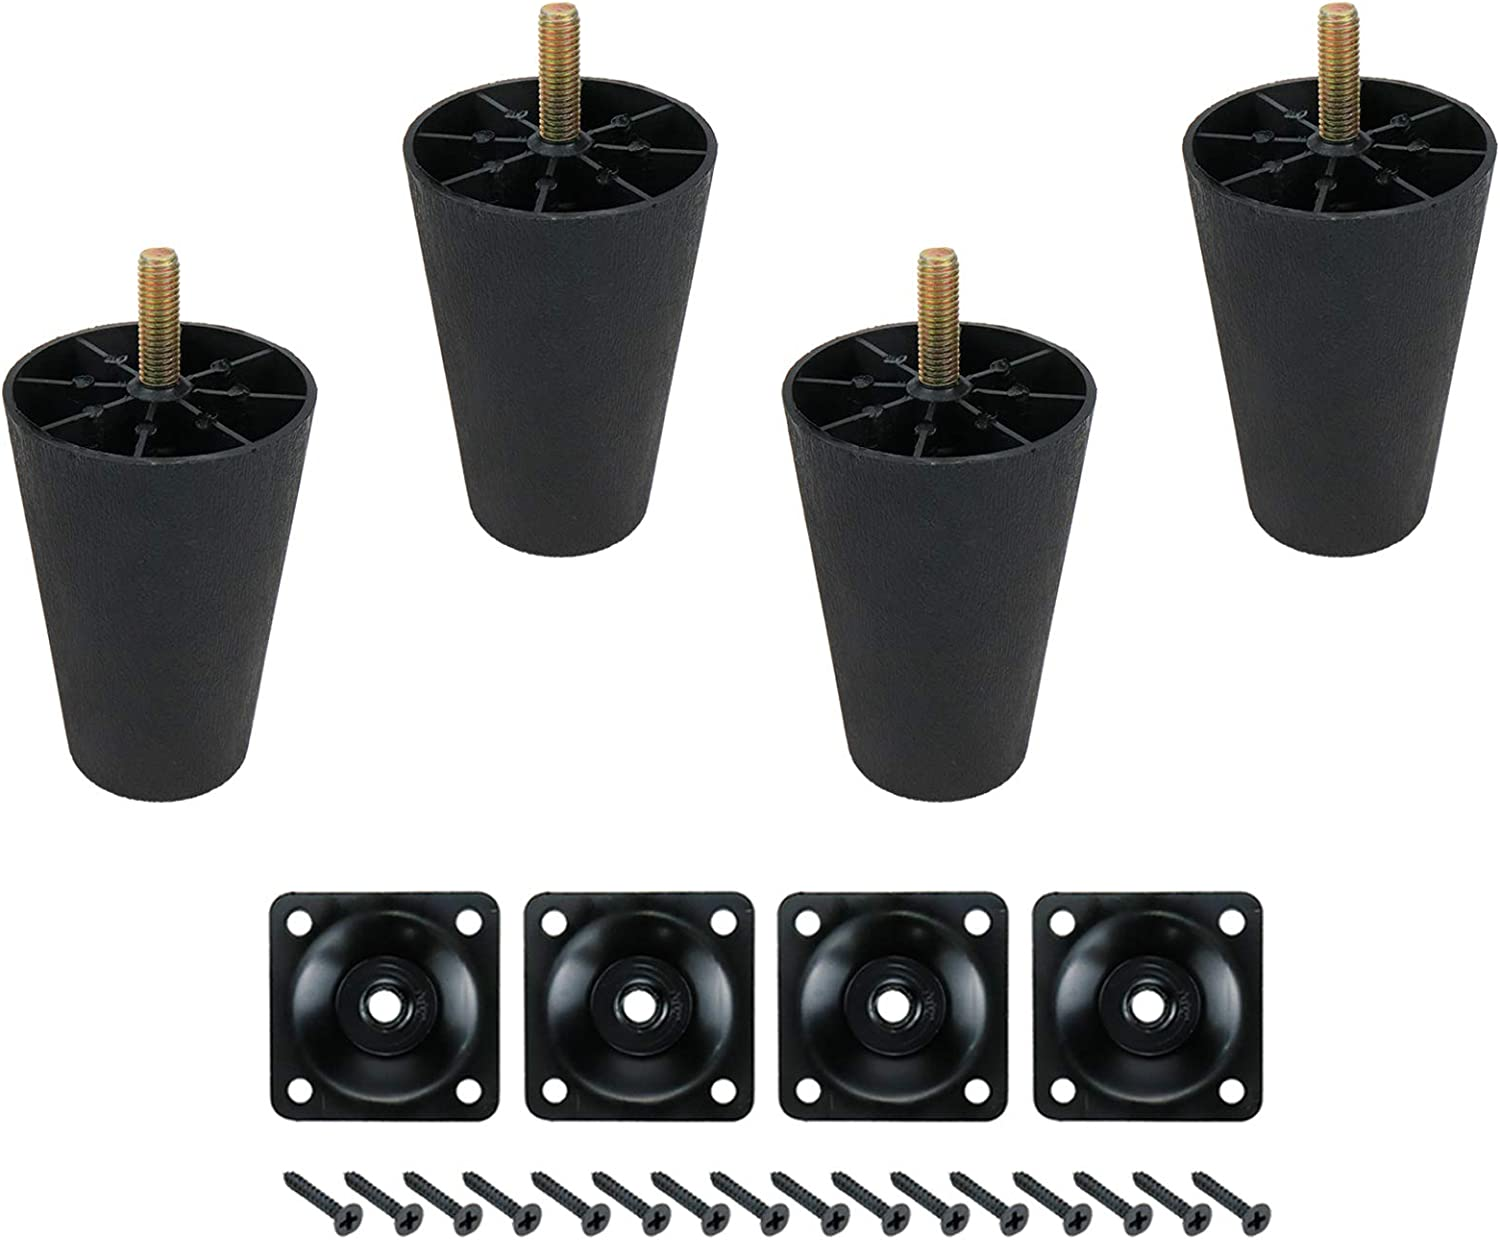 """FarBoat 4Pcs Tapered Sofa Couch Legs 3.5inch Height Plastic Furniture Legs 5/16"""" Bolt Replacement Round Mid-Century Modern for Chair Cabinet Feet Ottoman Coffee Table Chest with Plates Screws (Black)"""